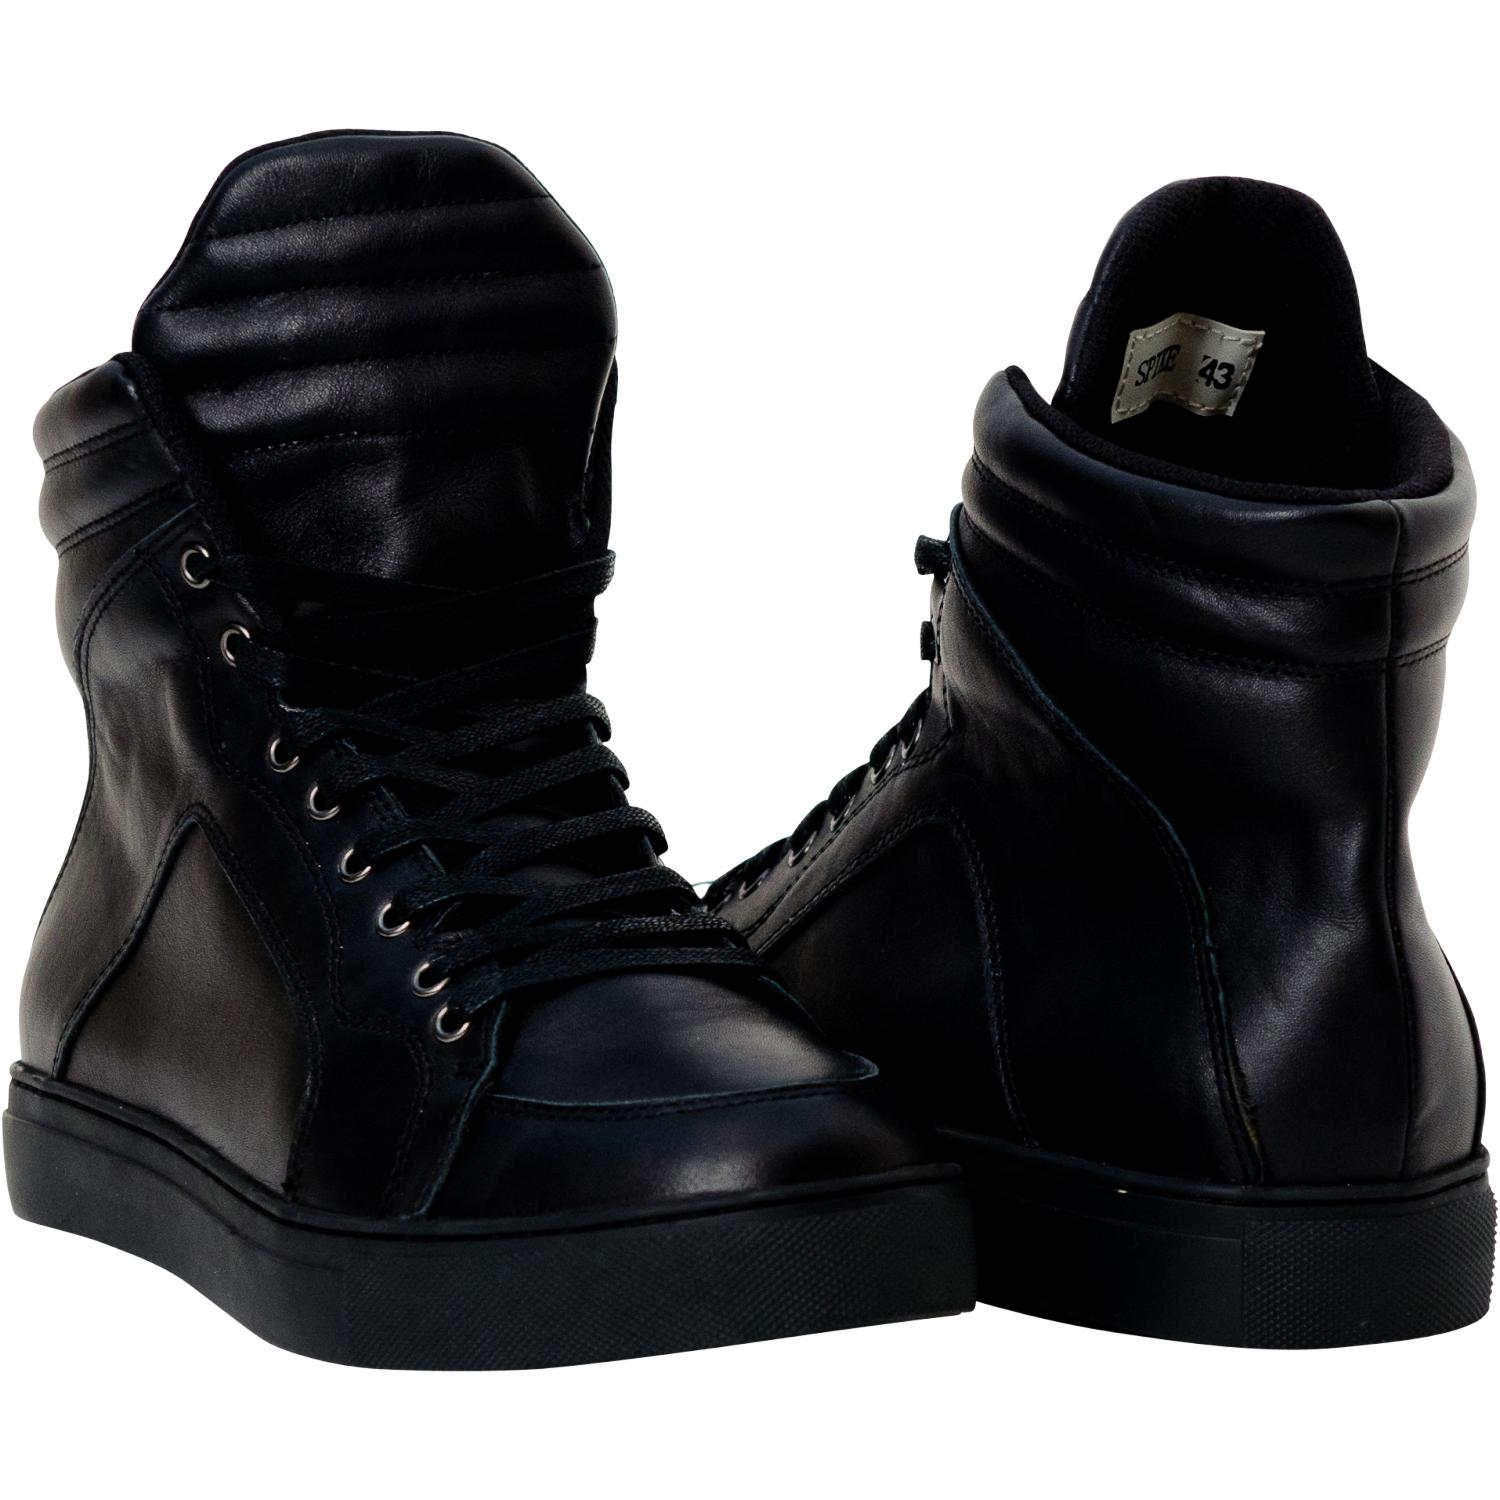 Spike Matte Black Nappa Leather High Top Sneakers   Paolo ...